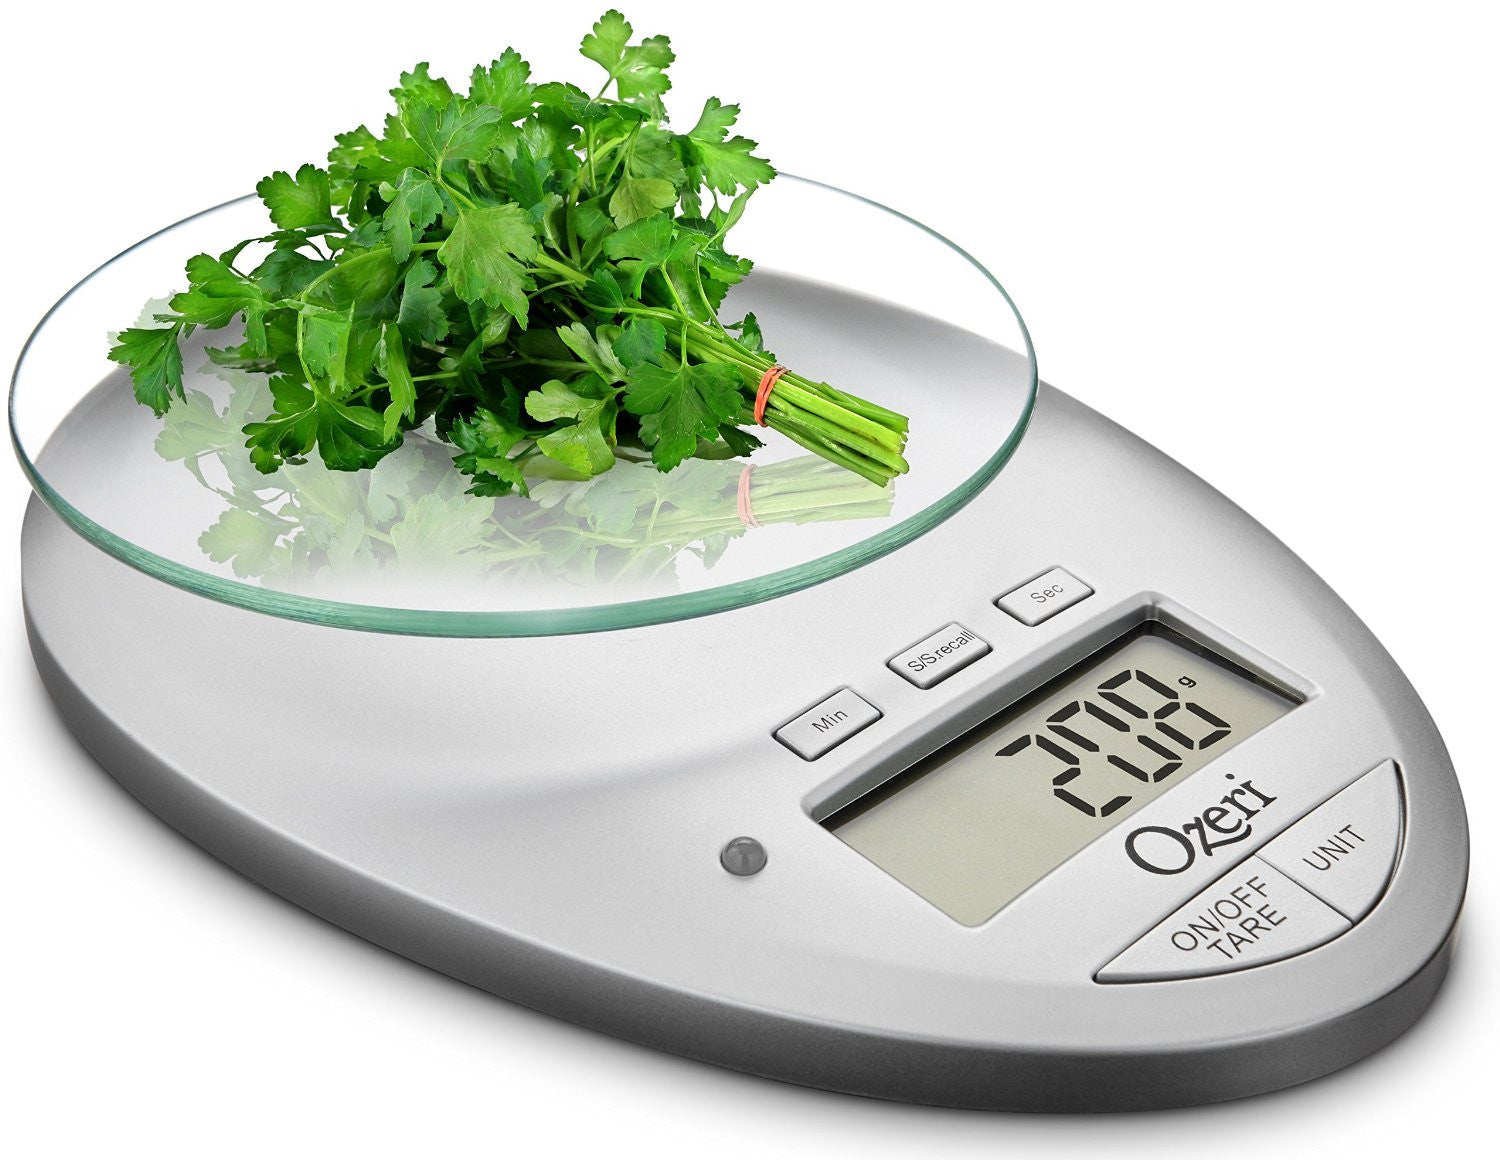 Ozeri Pro II Digital Kitchen Scale with Removable Glass Platform and  Countdown Kitchen Timer (1 g to 12 lbs(5 5 kg) Capacity), White